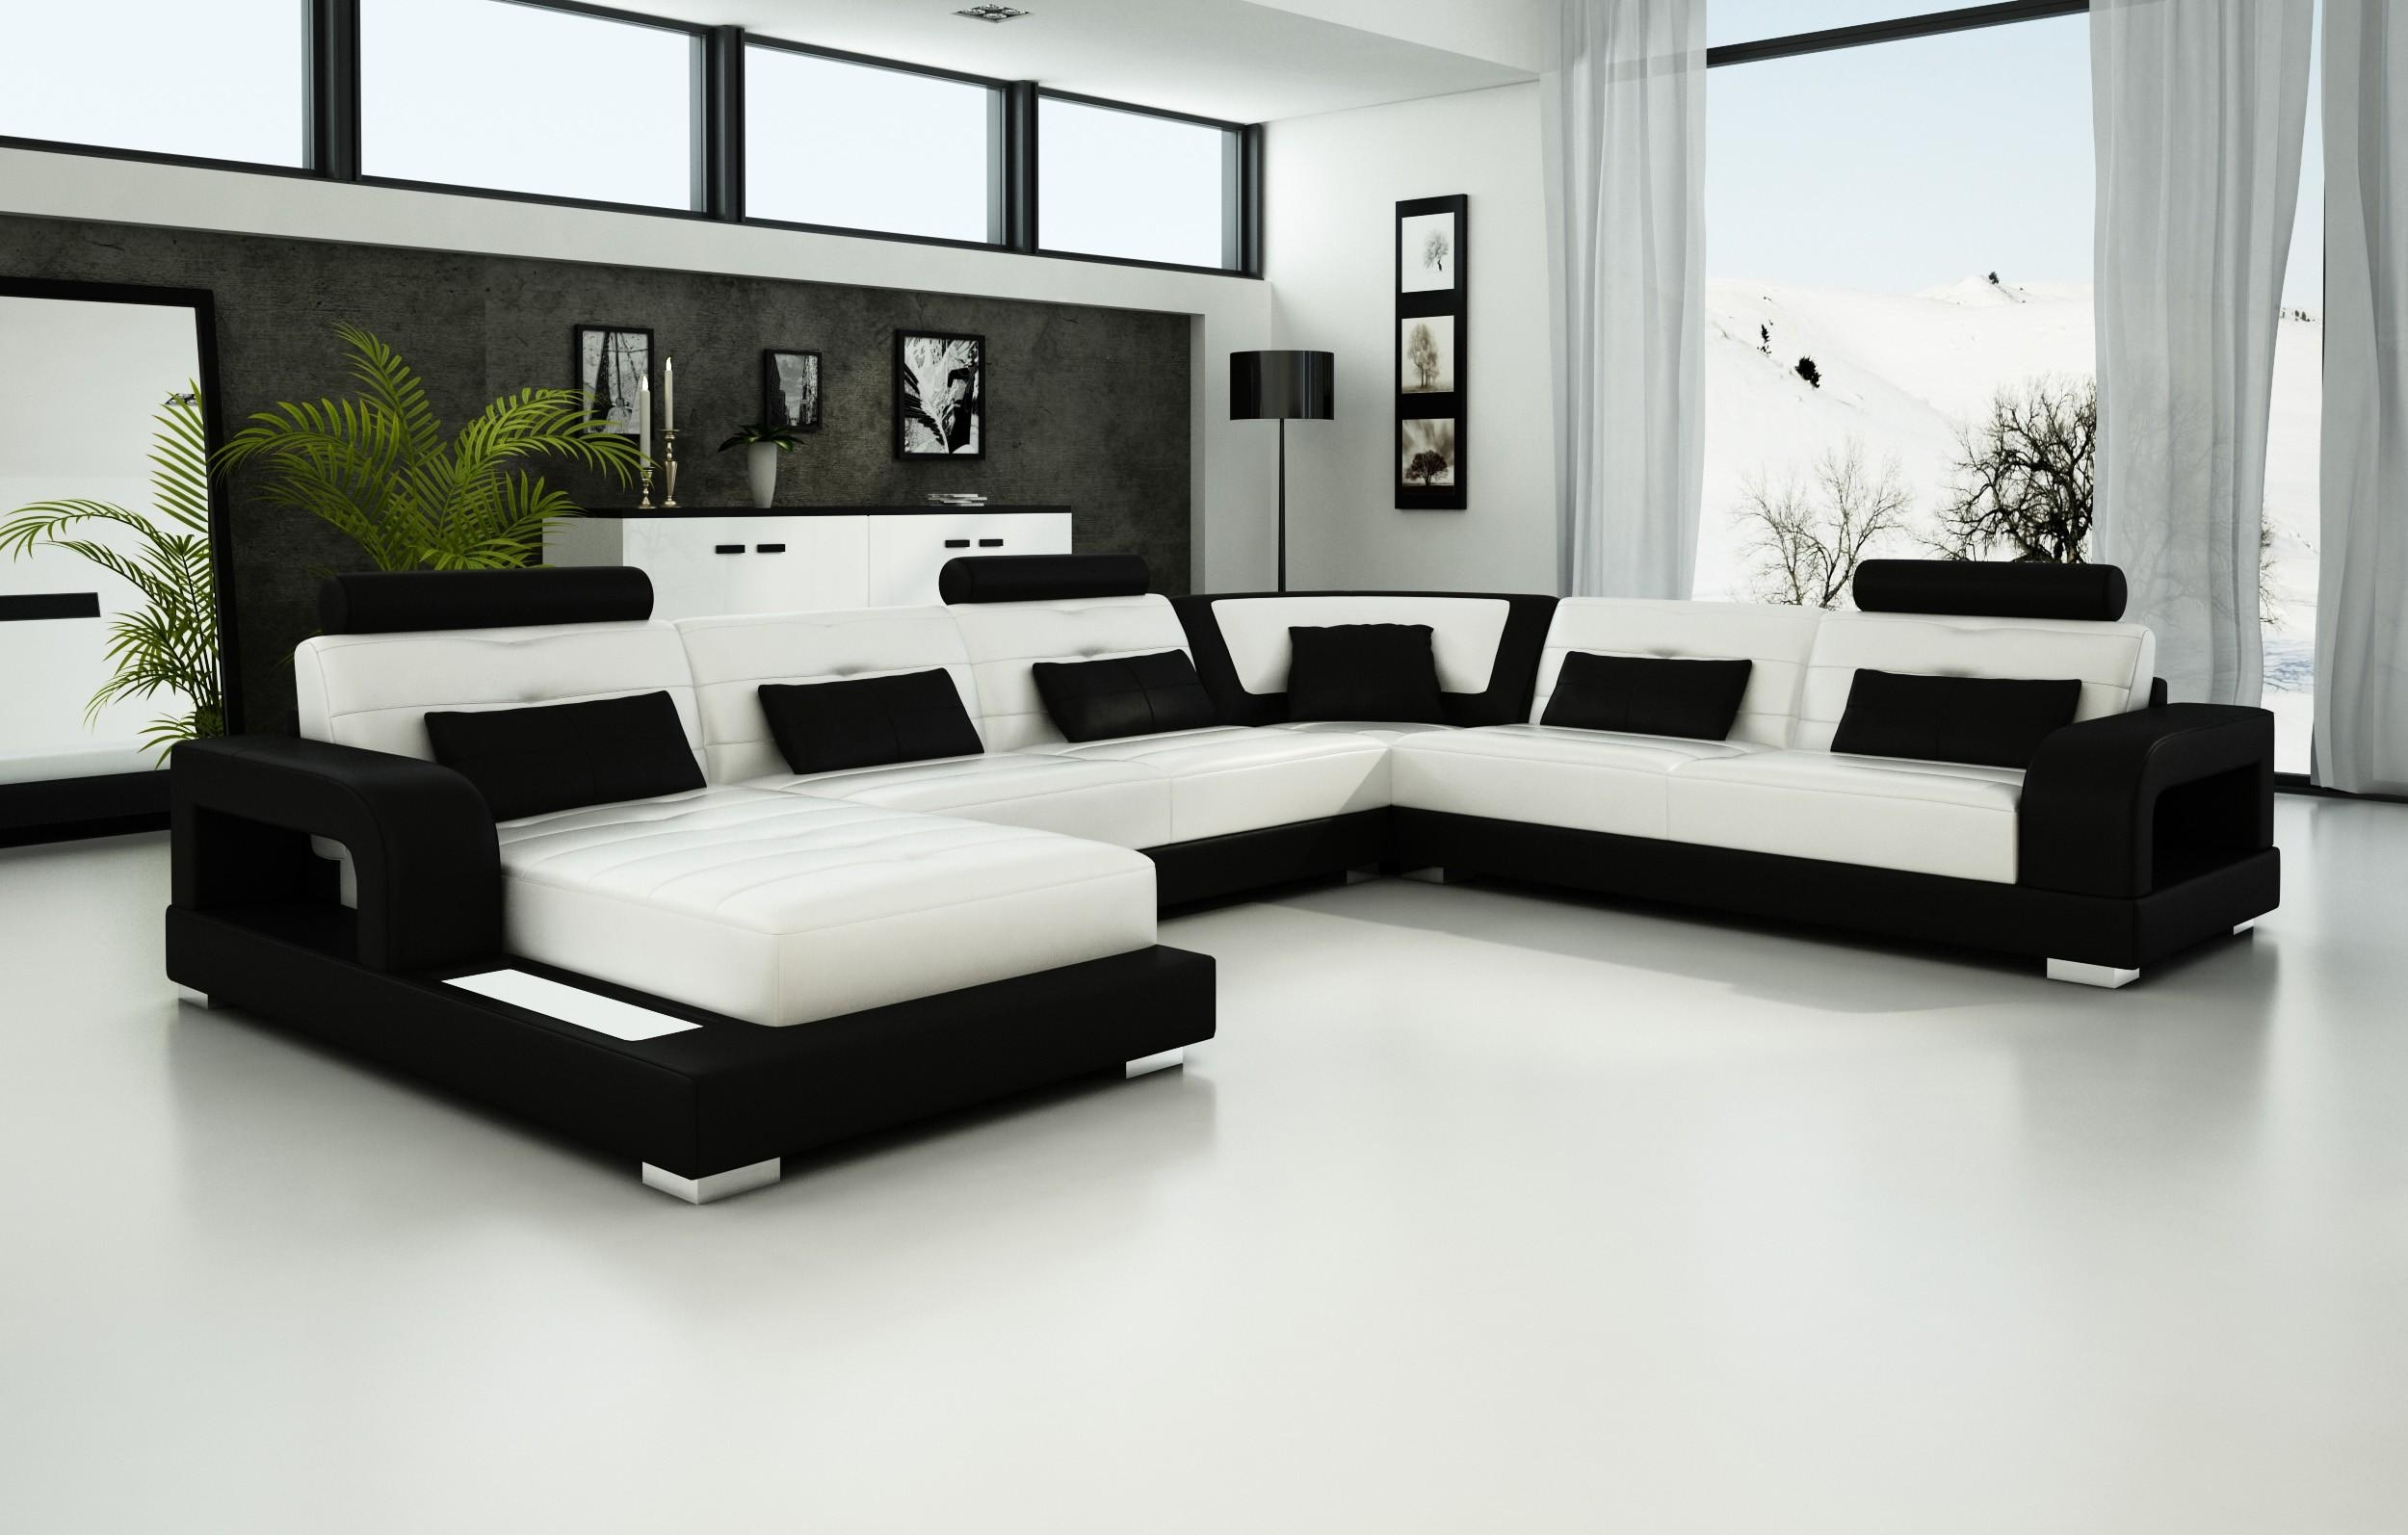 Bedroom : Small Sofa Leather Sectional Sleeper Sofas Modern For White And Black Sofas (Image 4 of 21)